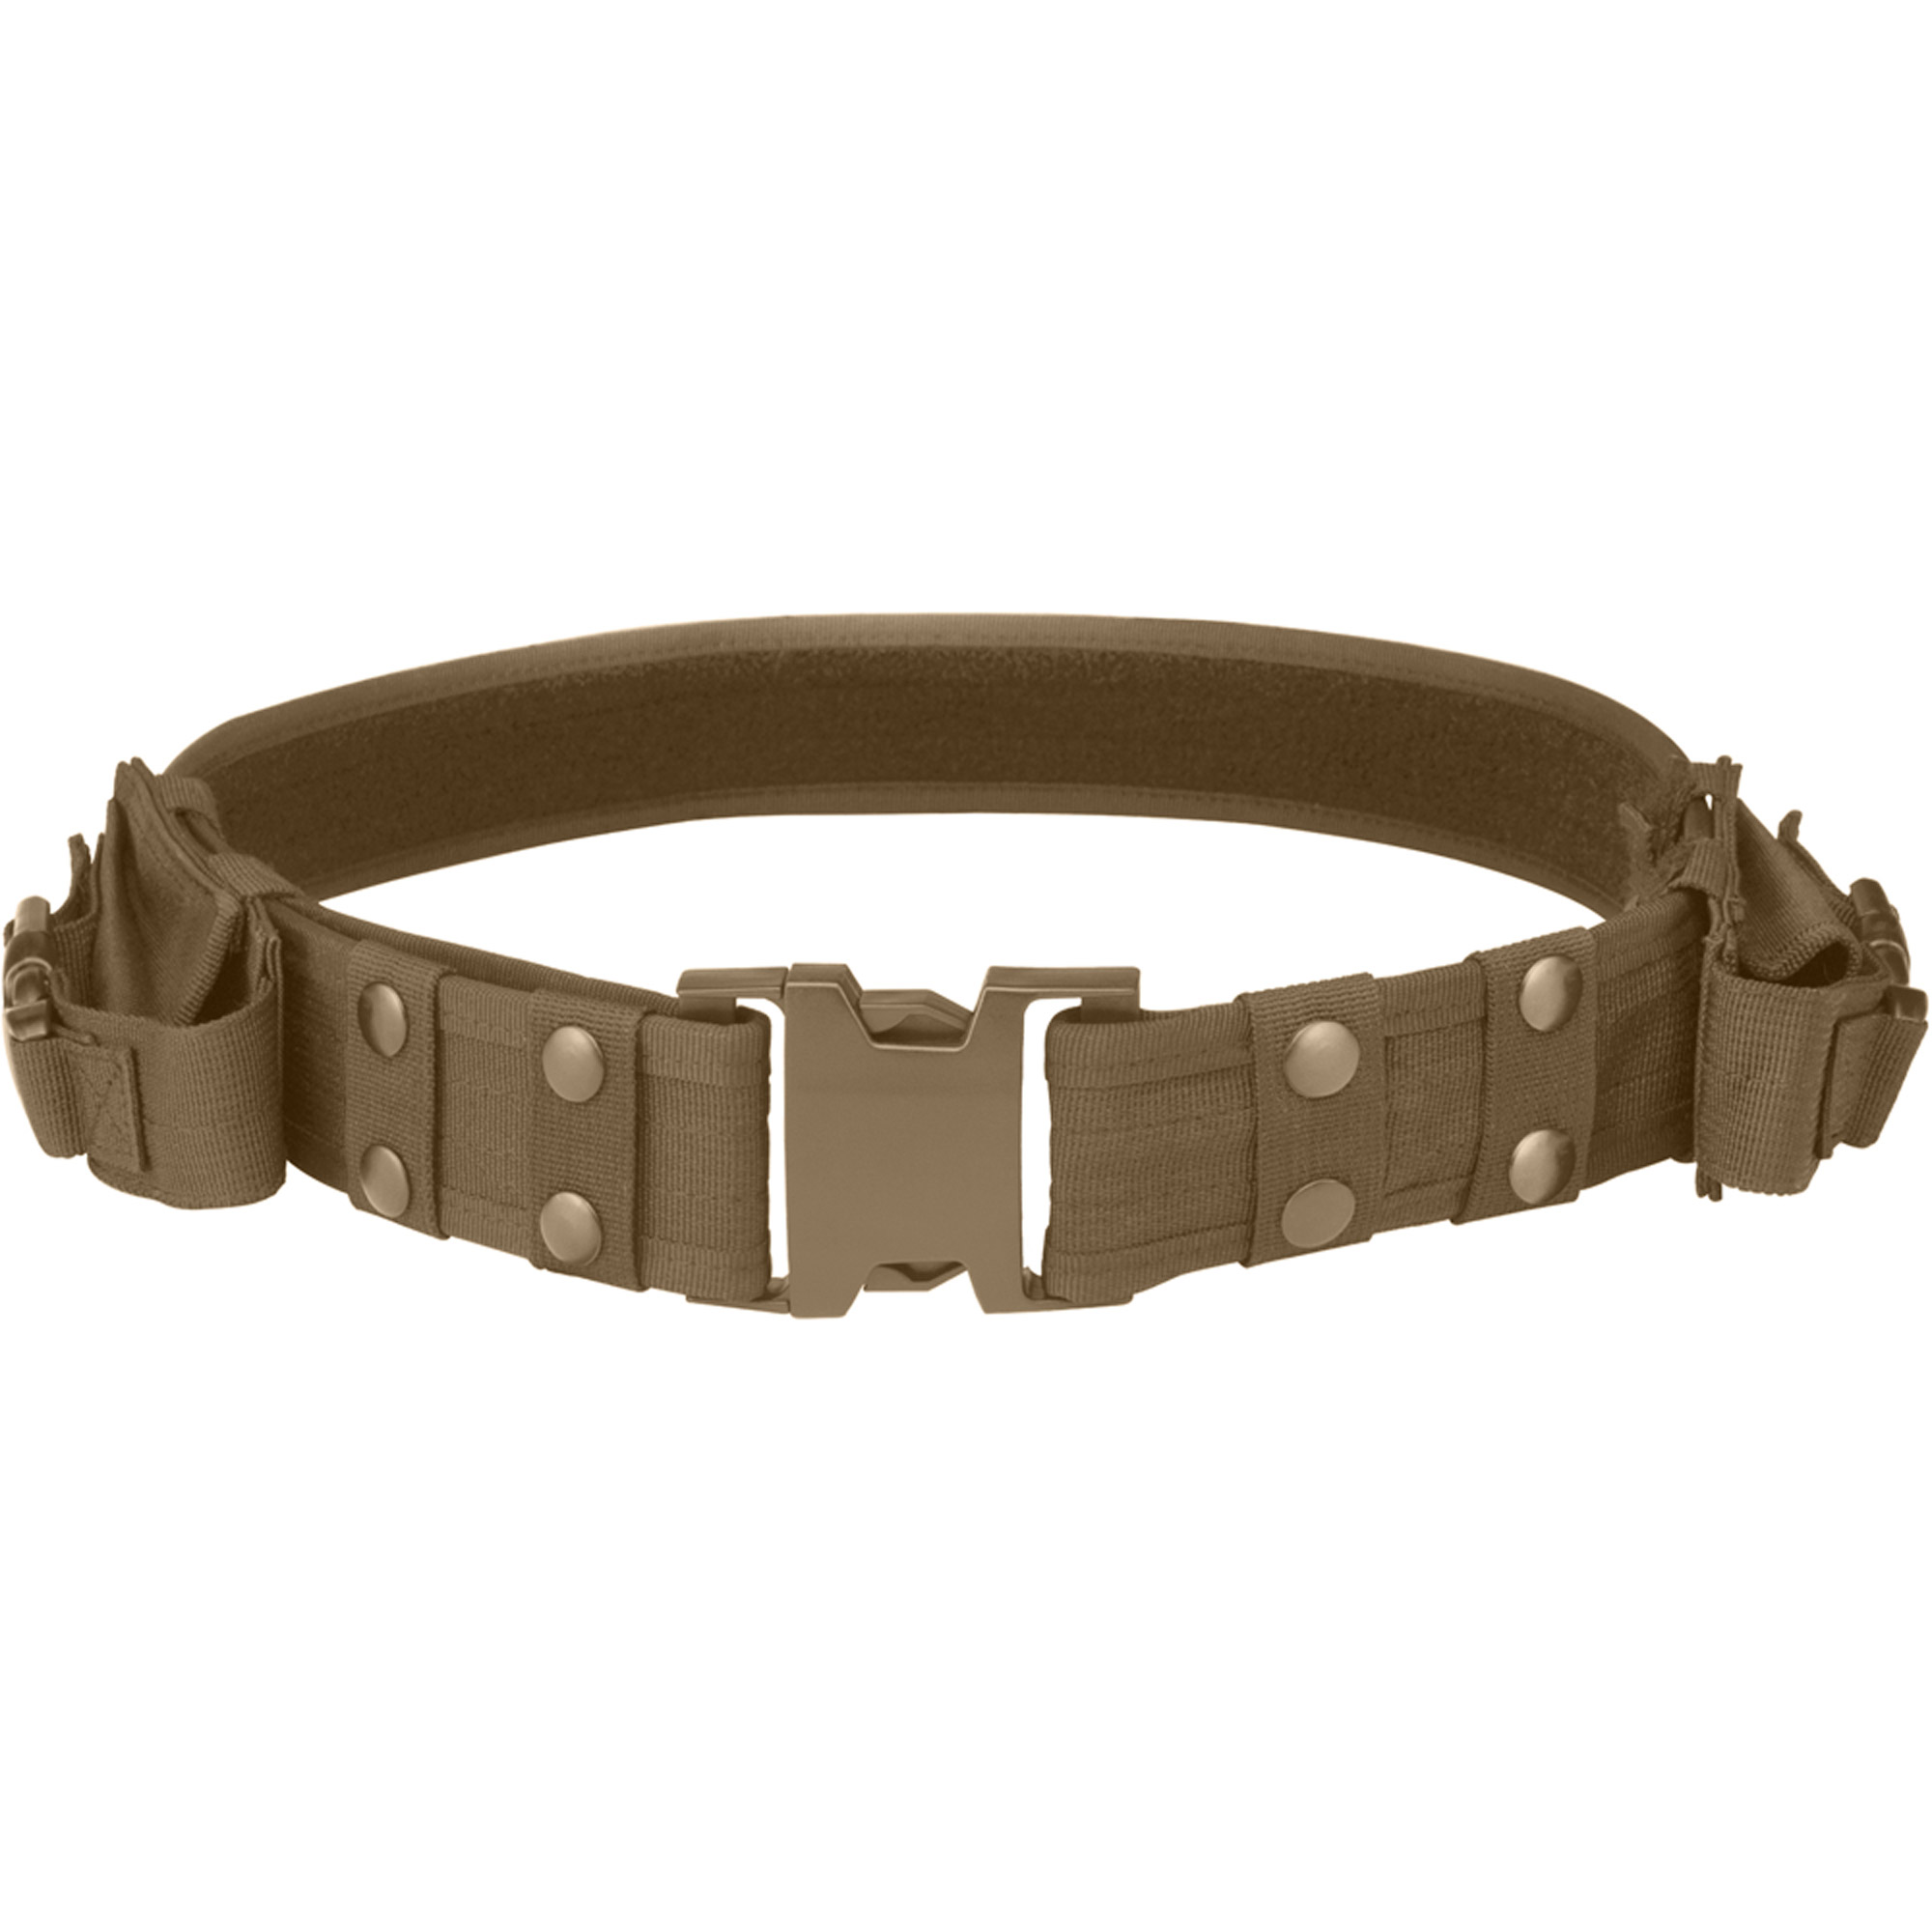 Barska Optics Loaded Gear CX-600 Tactical Belt, Tan